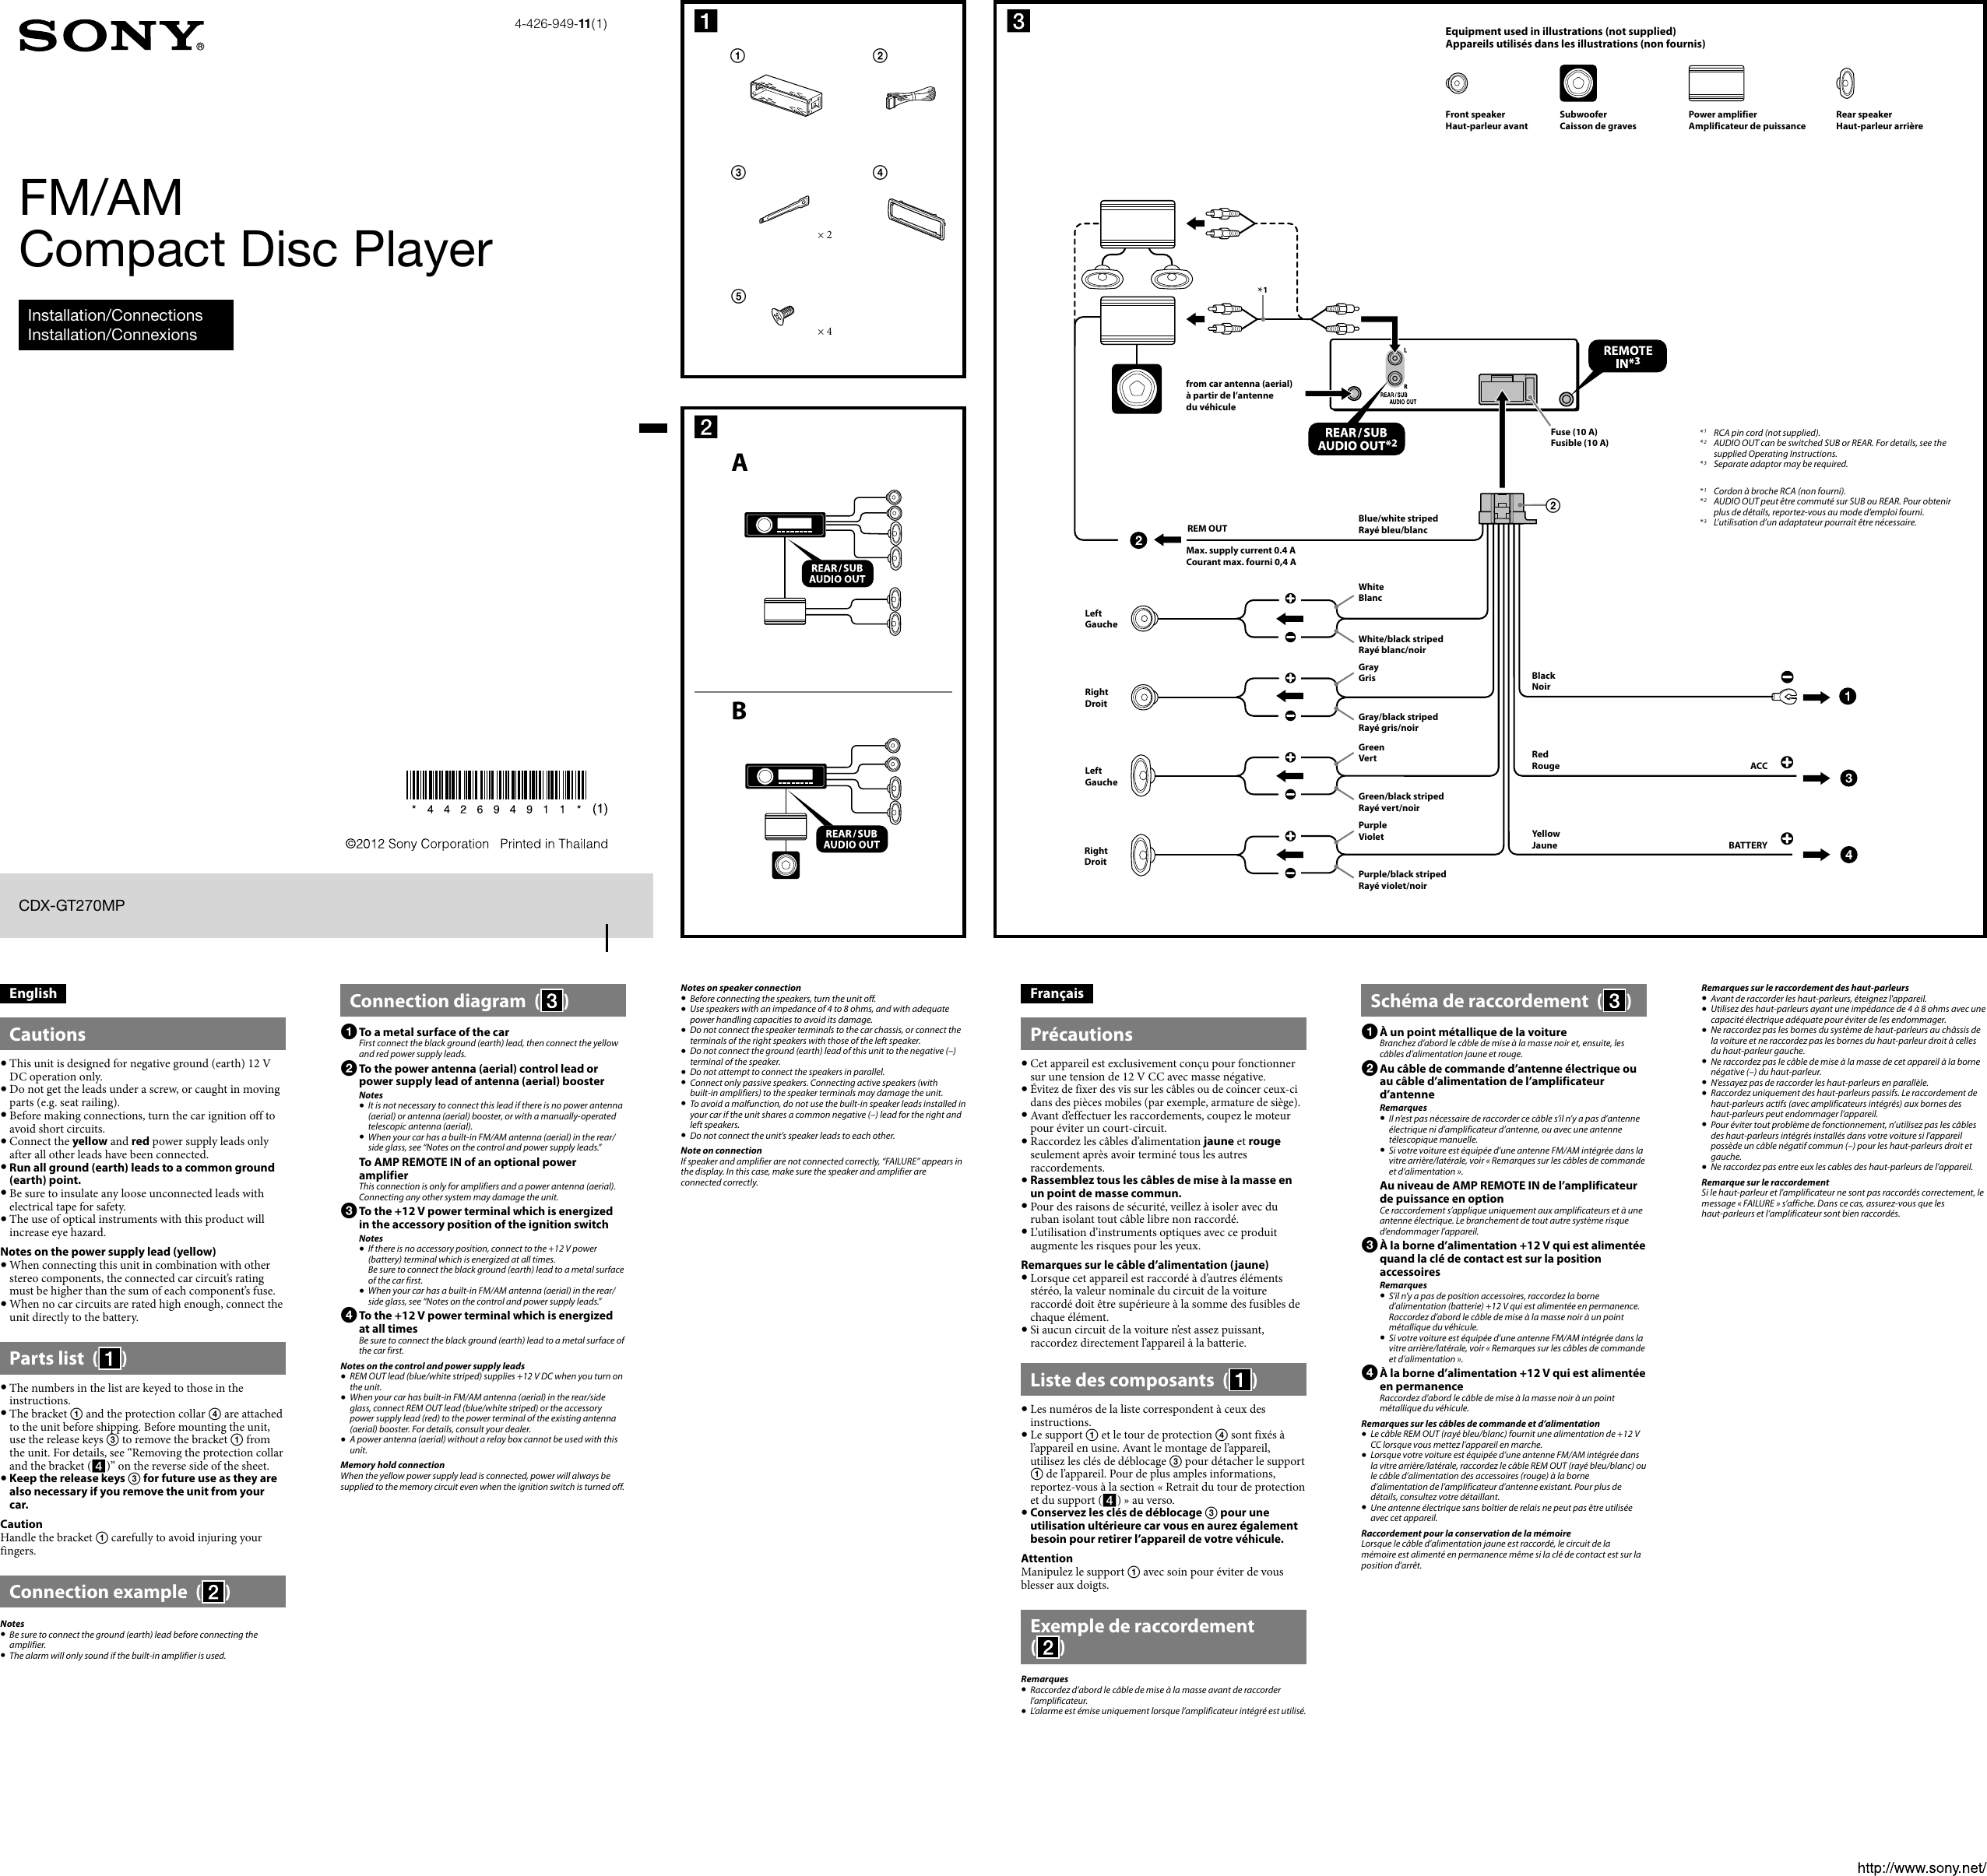 Wiring Harnes Diagram For Sony Cdx Gt720